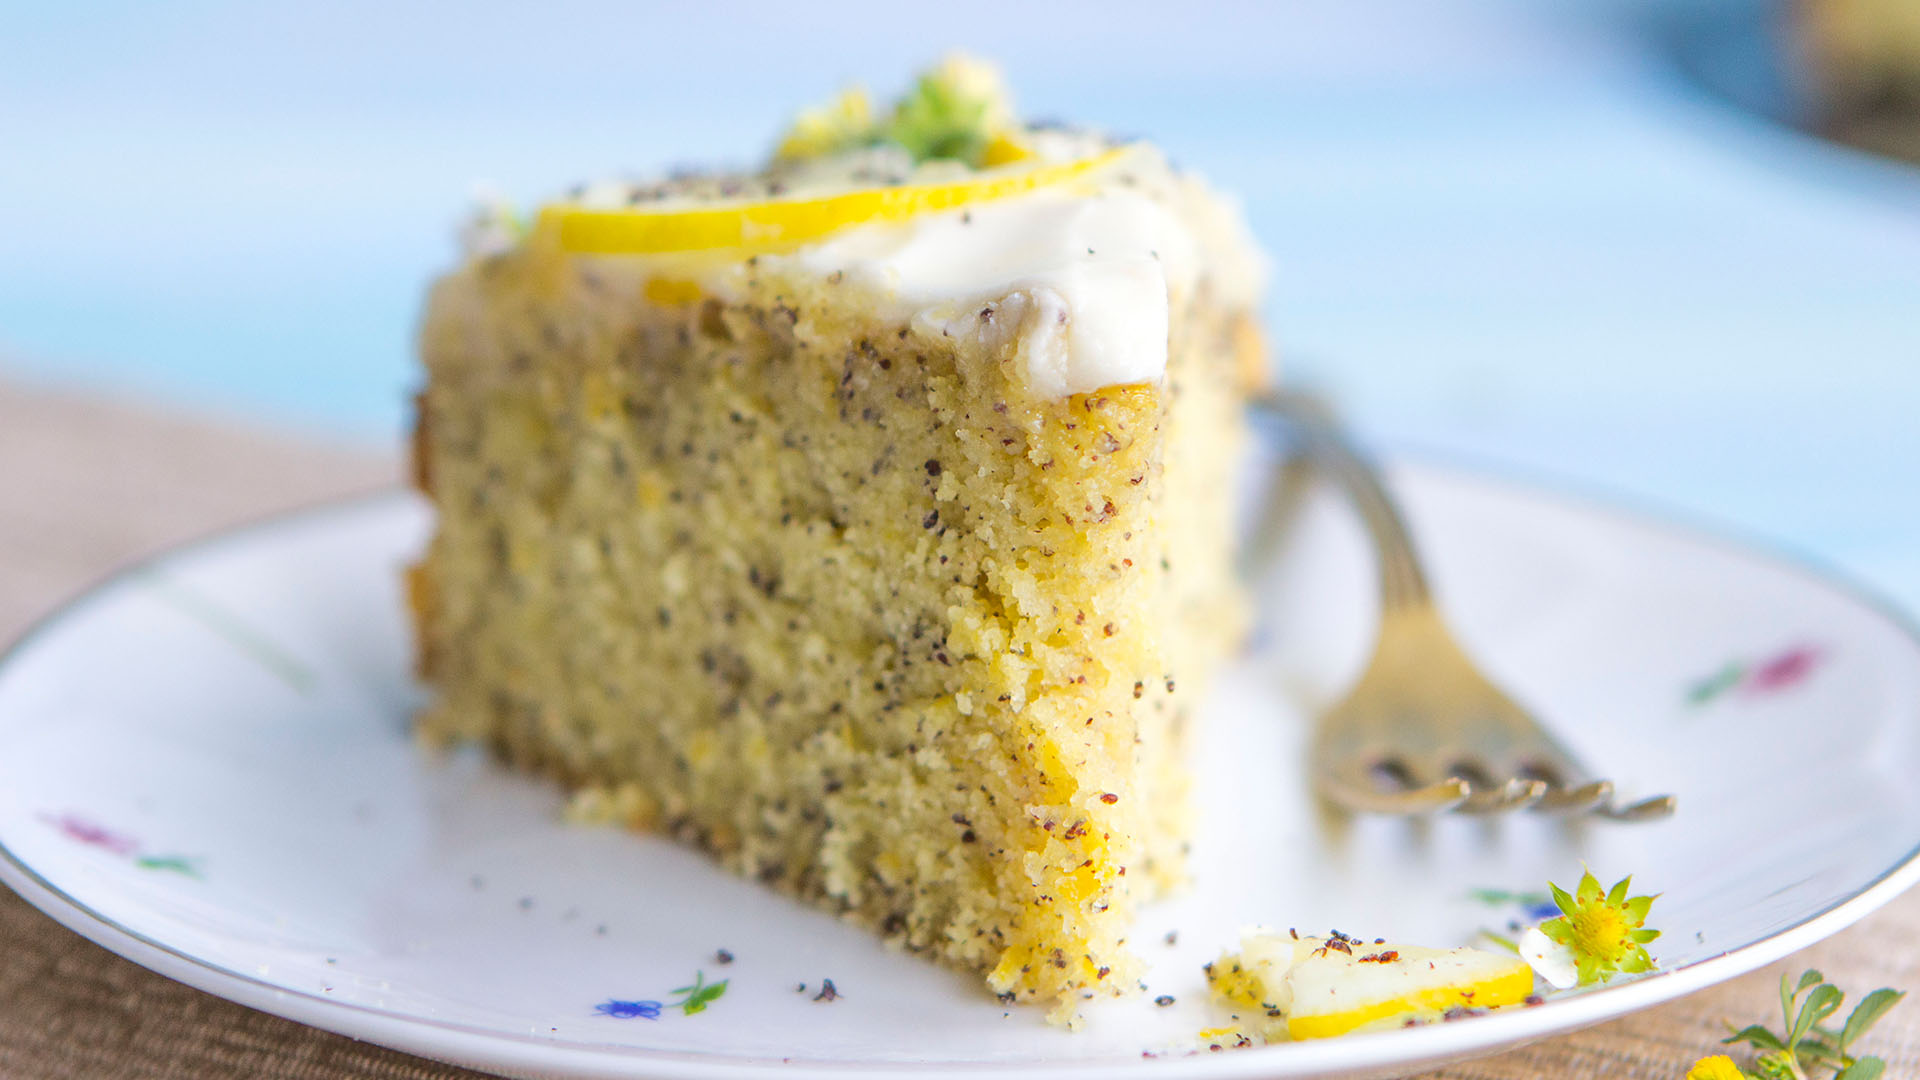 Poppy Seed Cake Recipe From Scratch